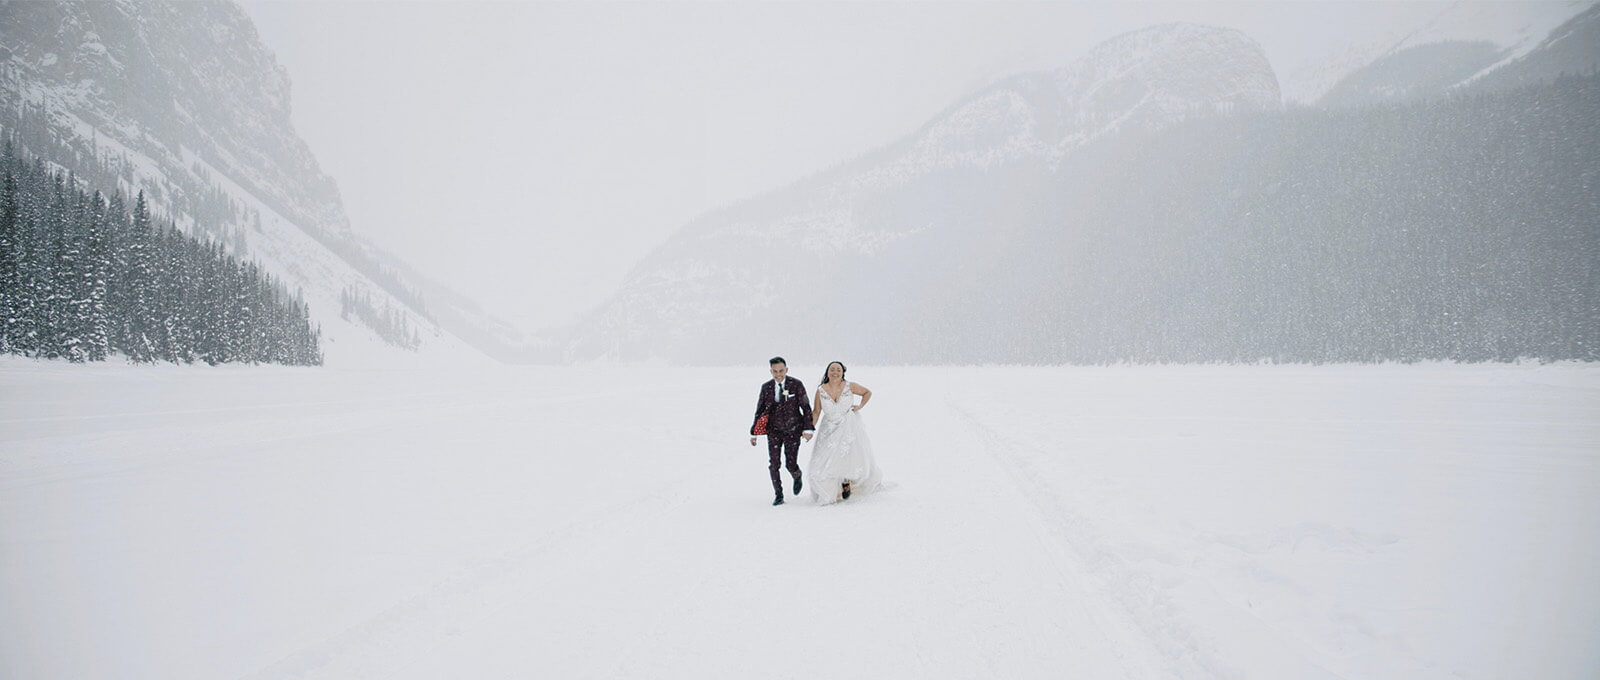 Sam and Collin intimate wedding at lake louise